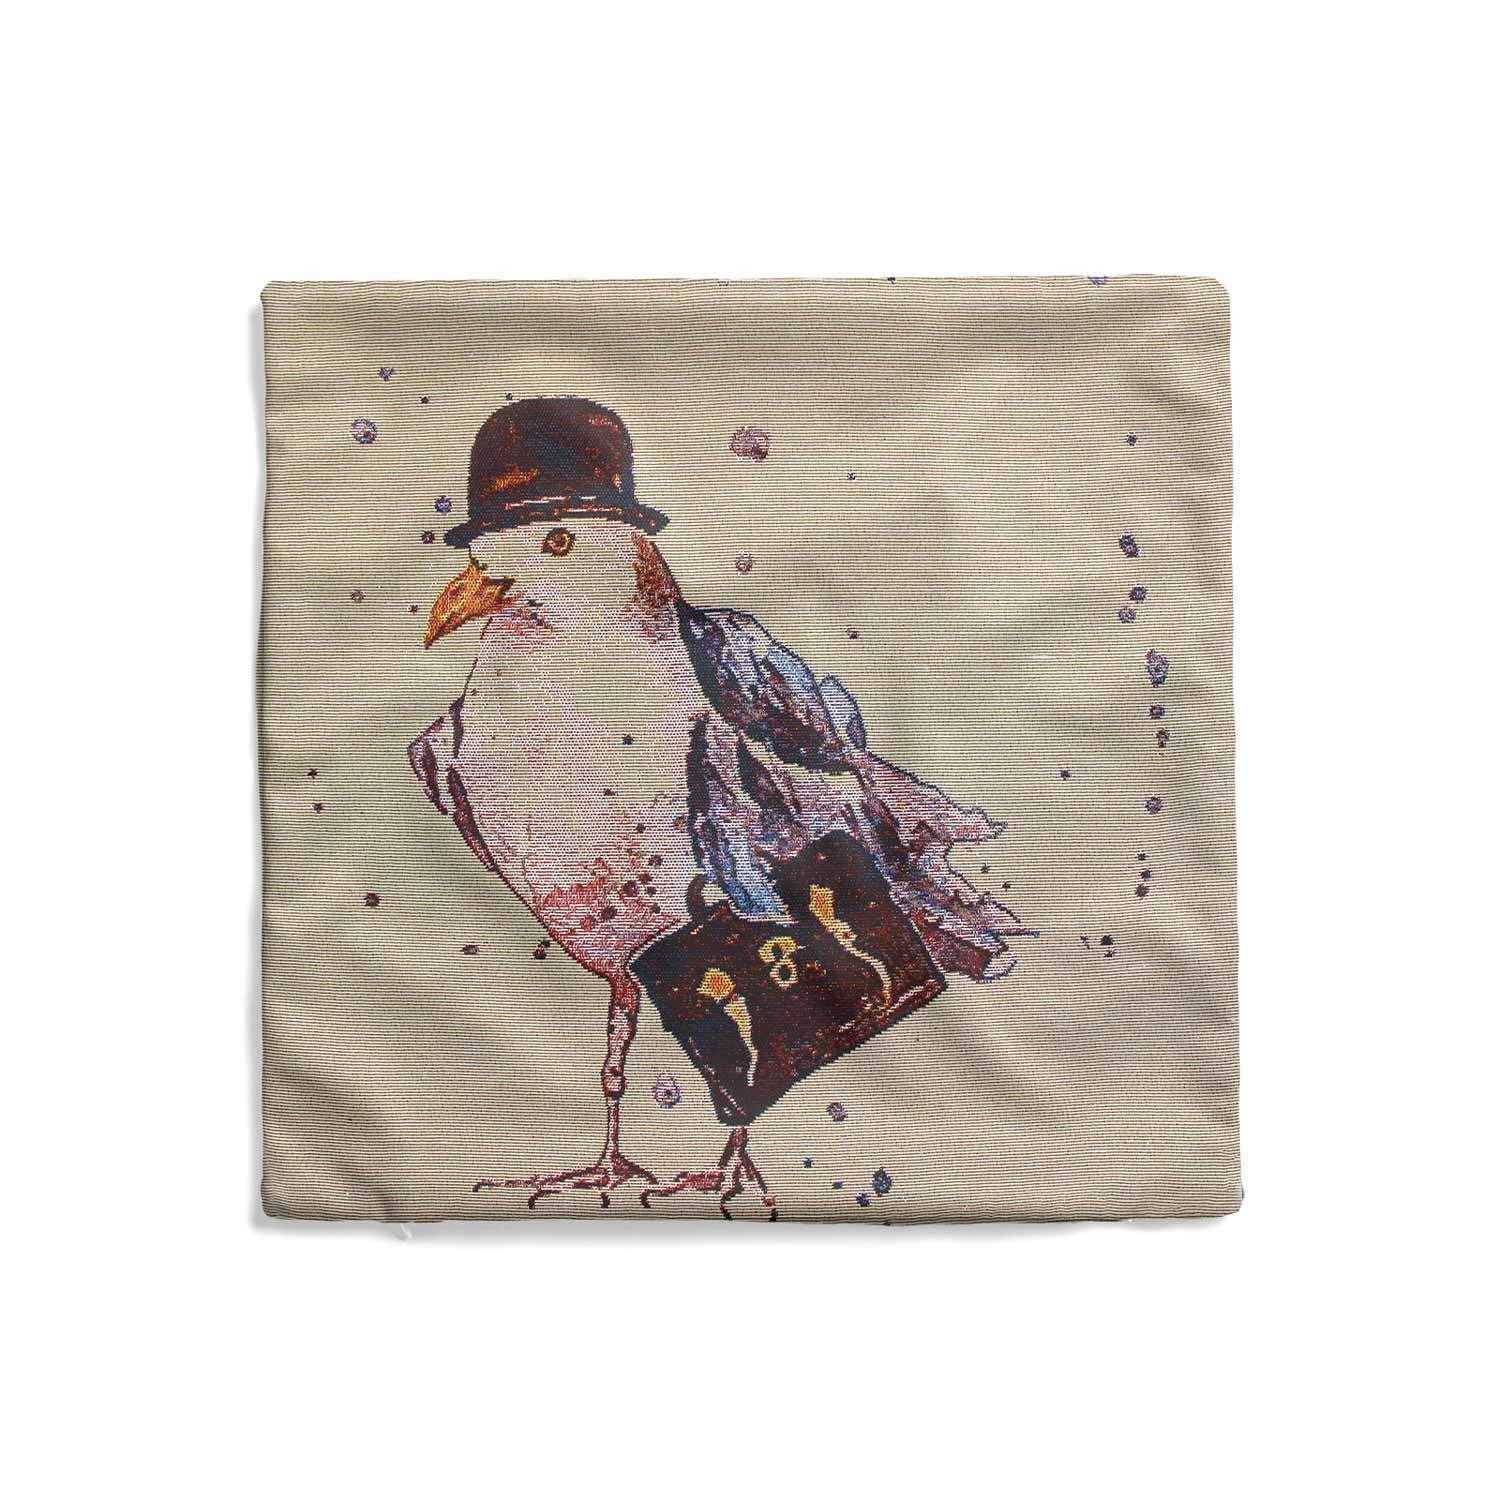 Tapestry-Cushion-Covers-Vintage-Pillow-Cover-Collection-18-034-45cm-Filled-Cushions thumbnail 139